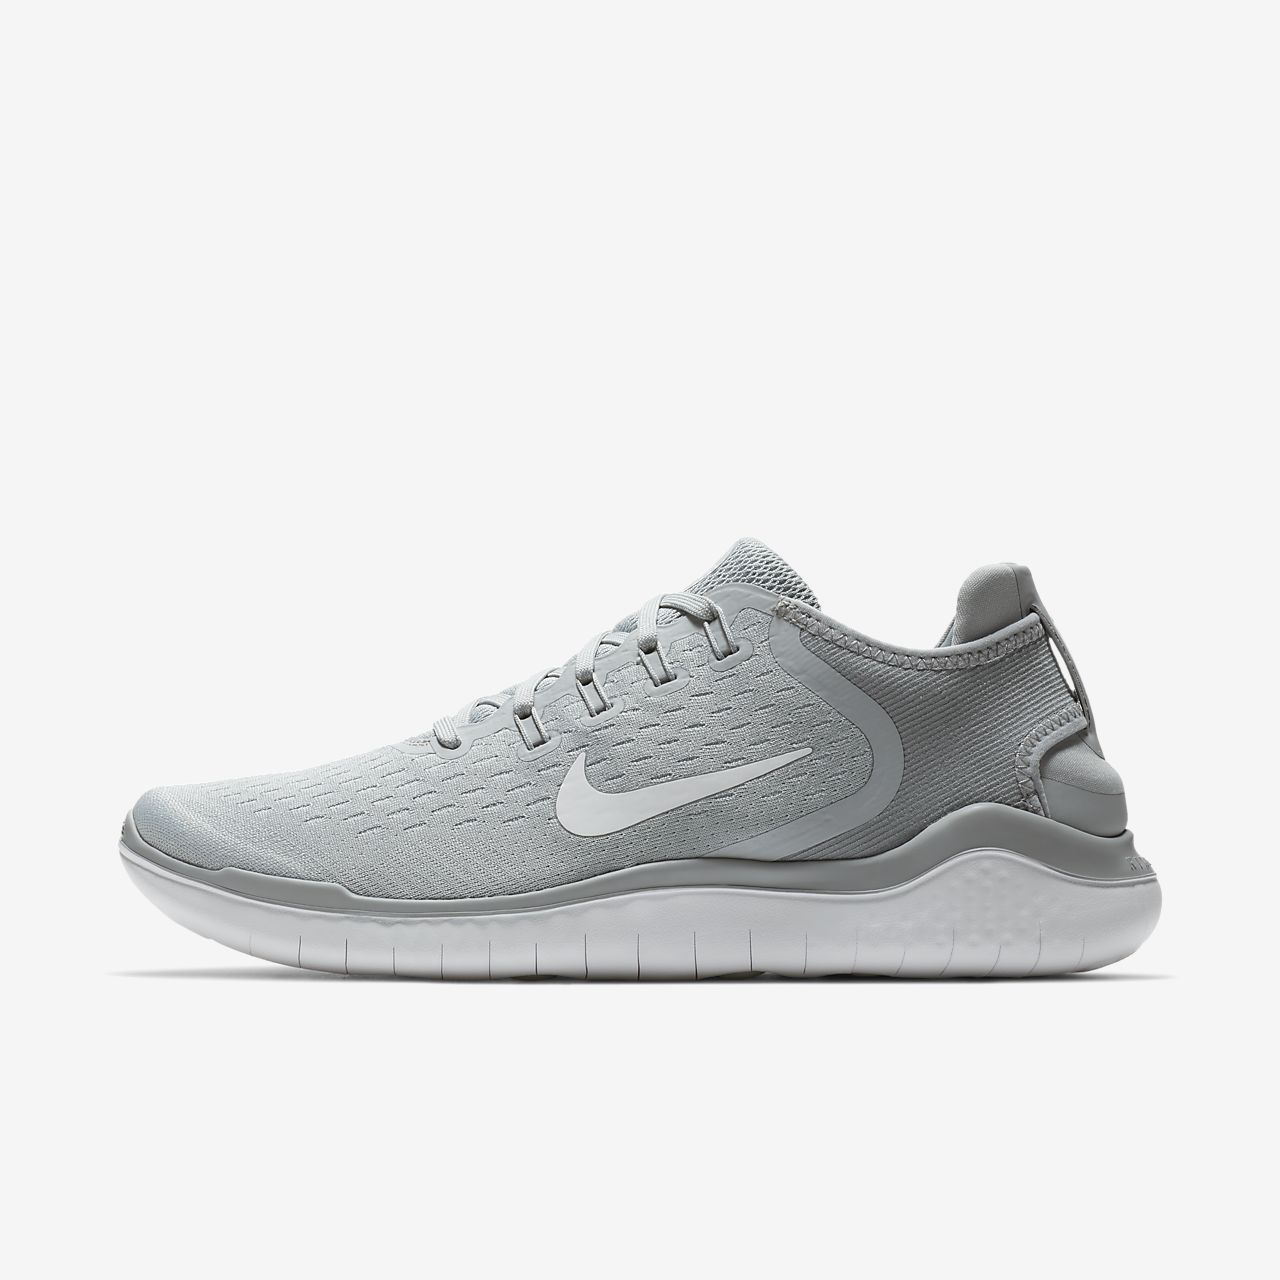 Chaussure de running Nike Free RN 2018 pour Homme